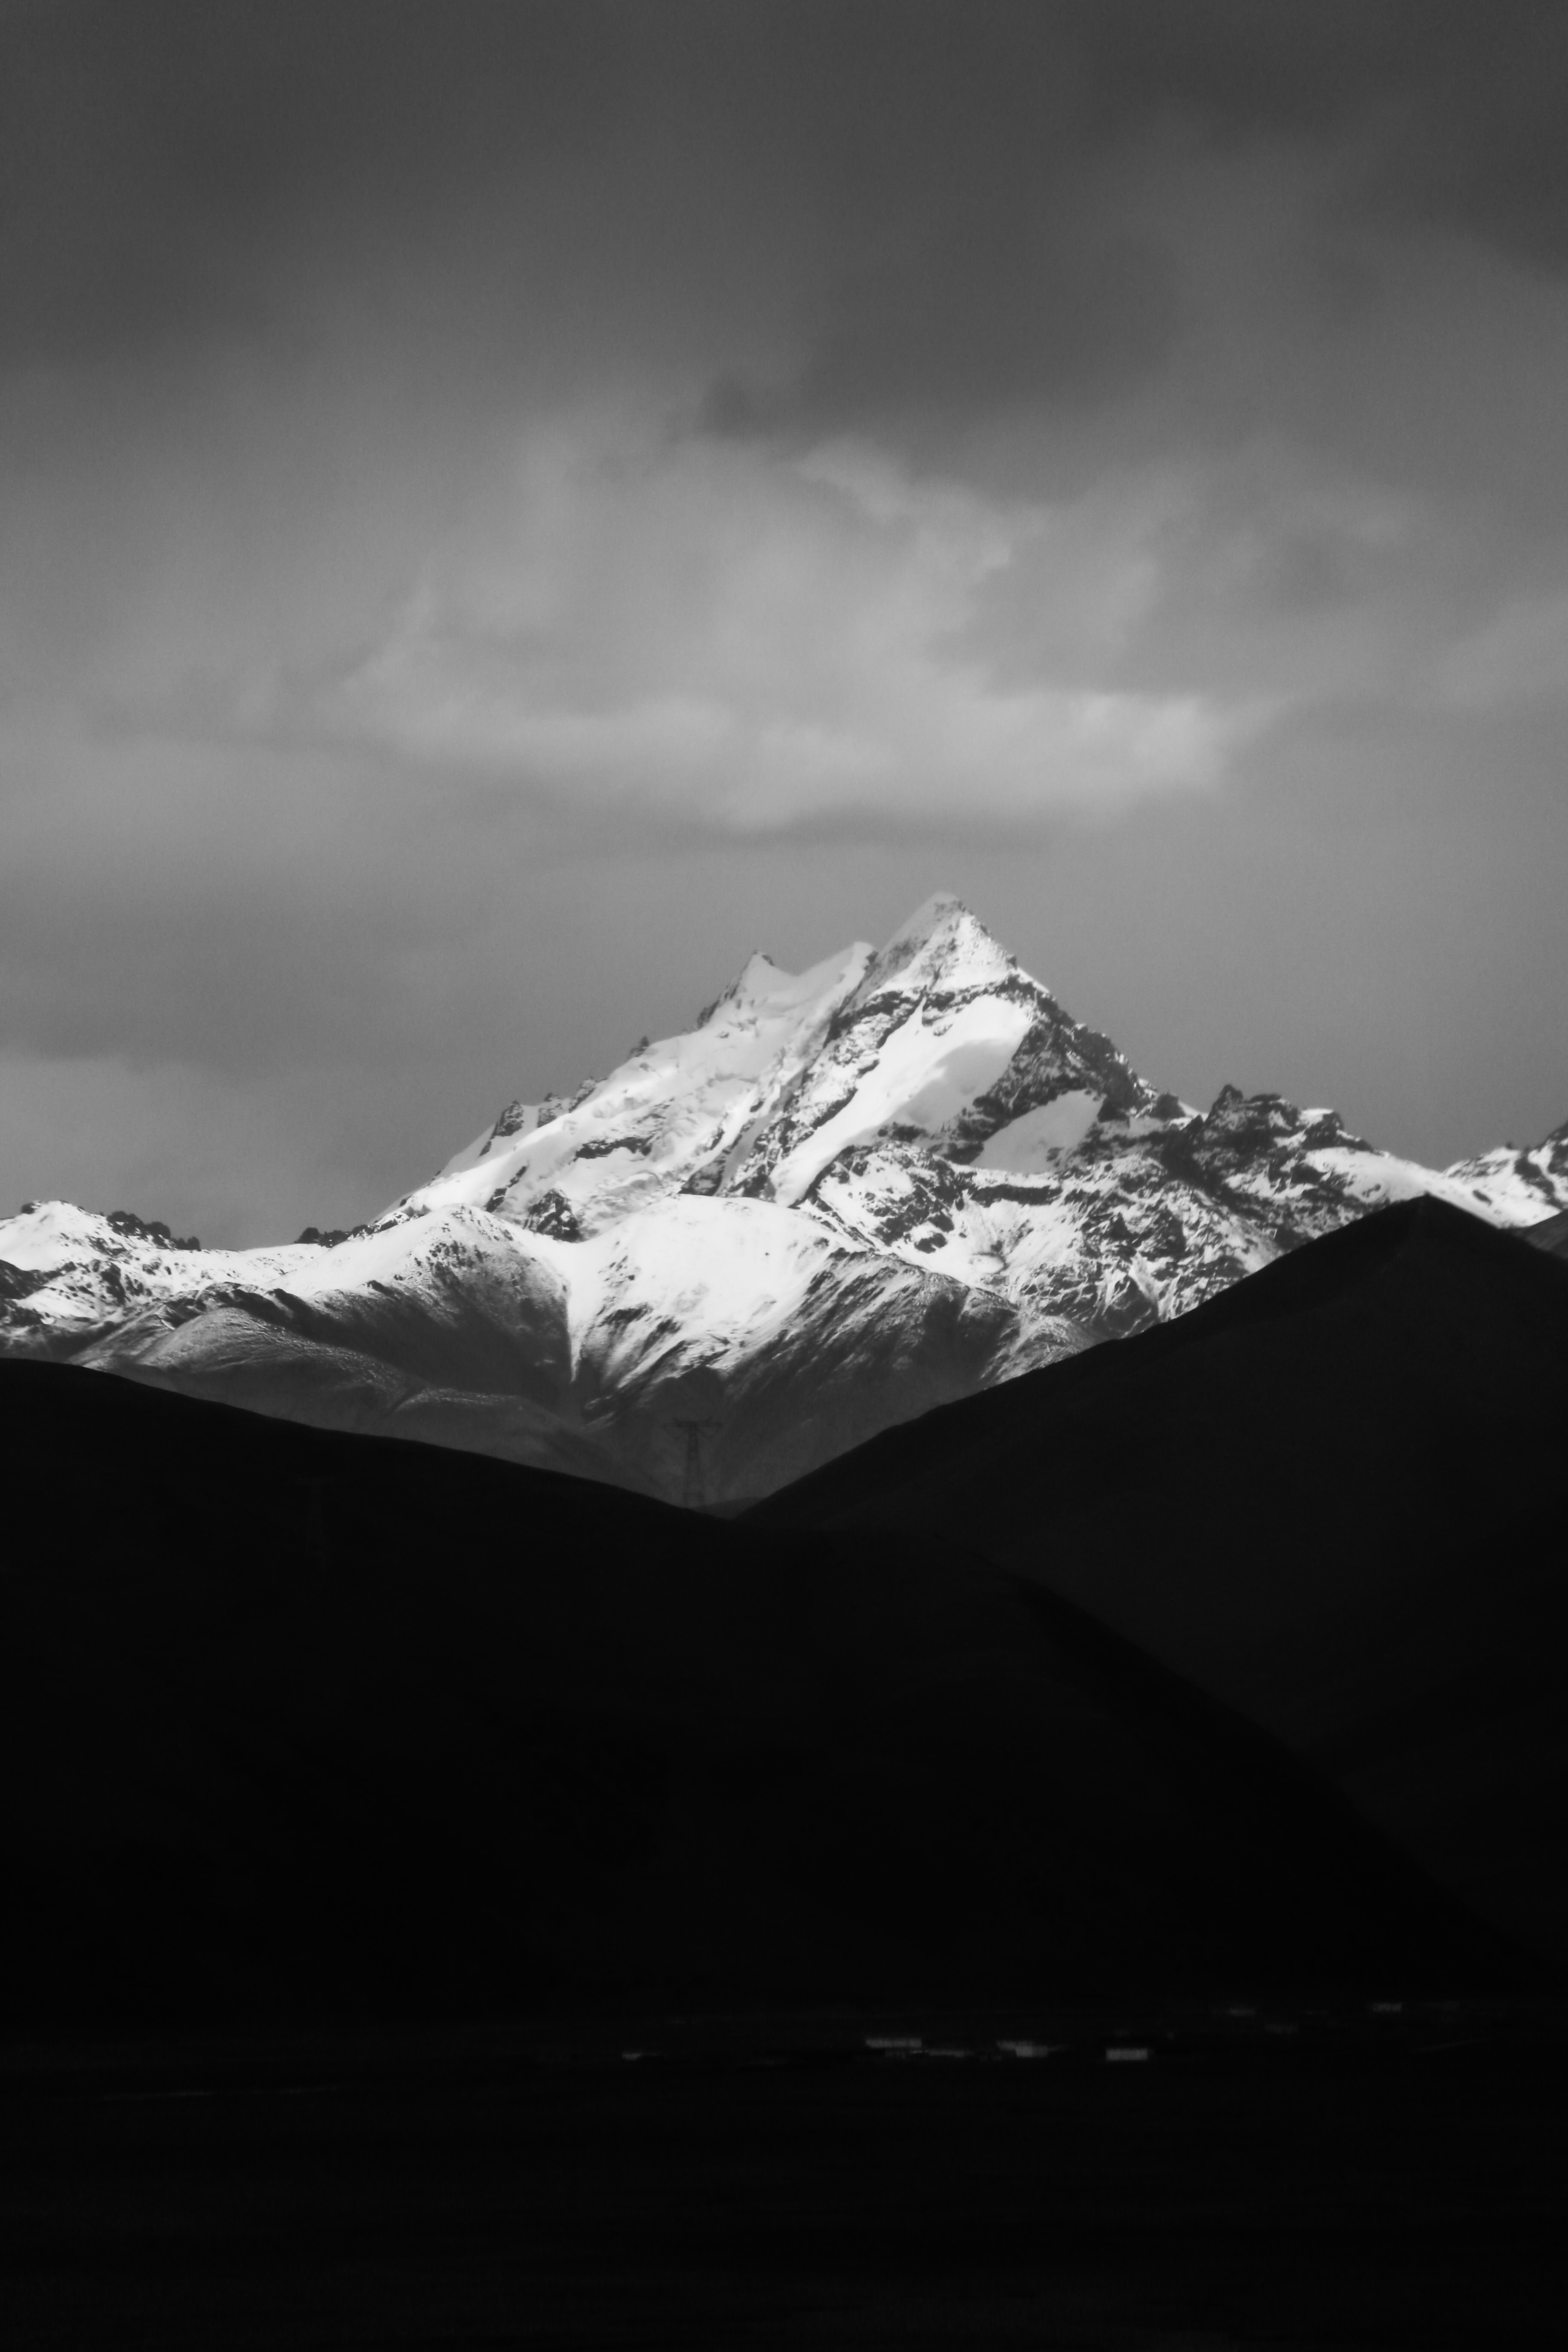 grayscale photo of mountain coated snow